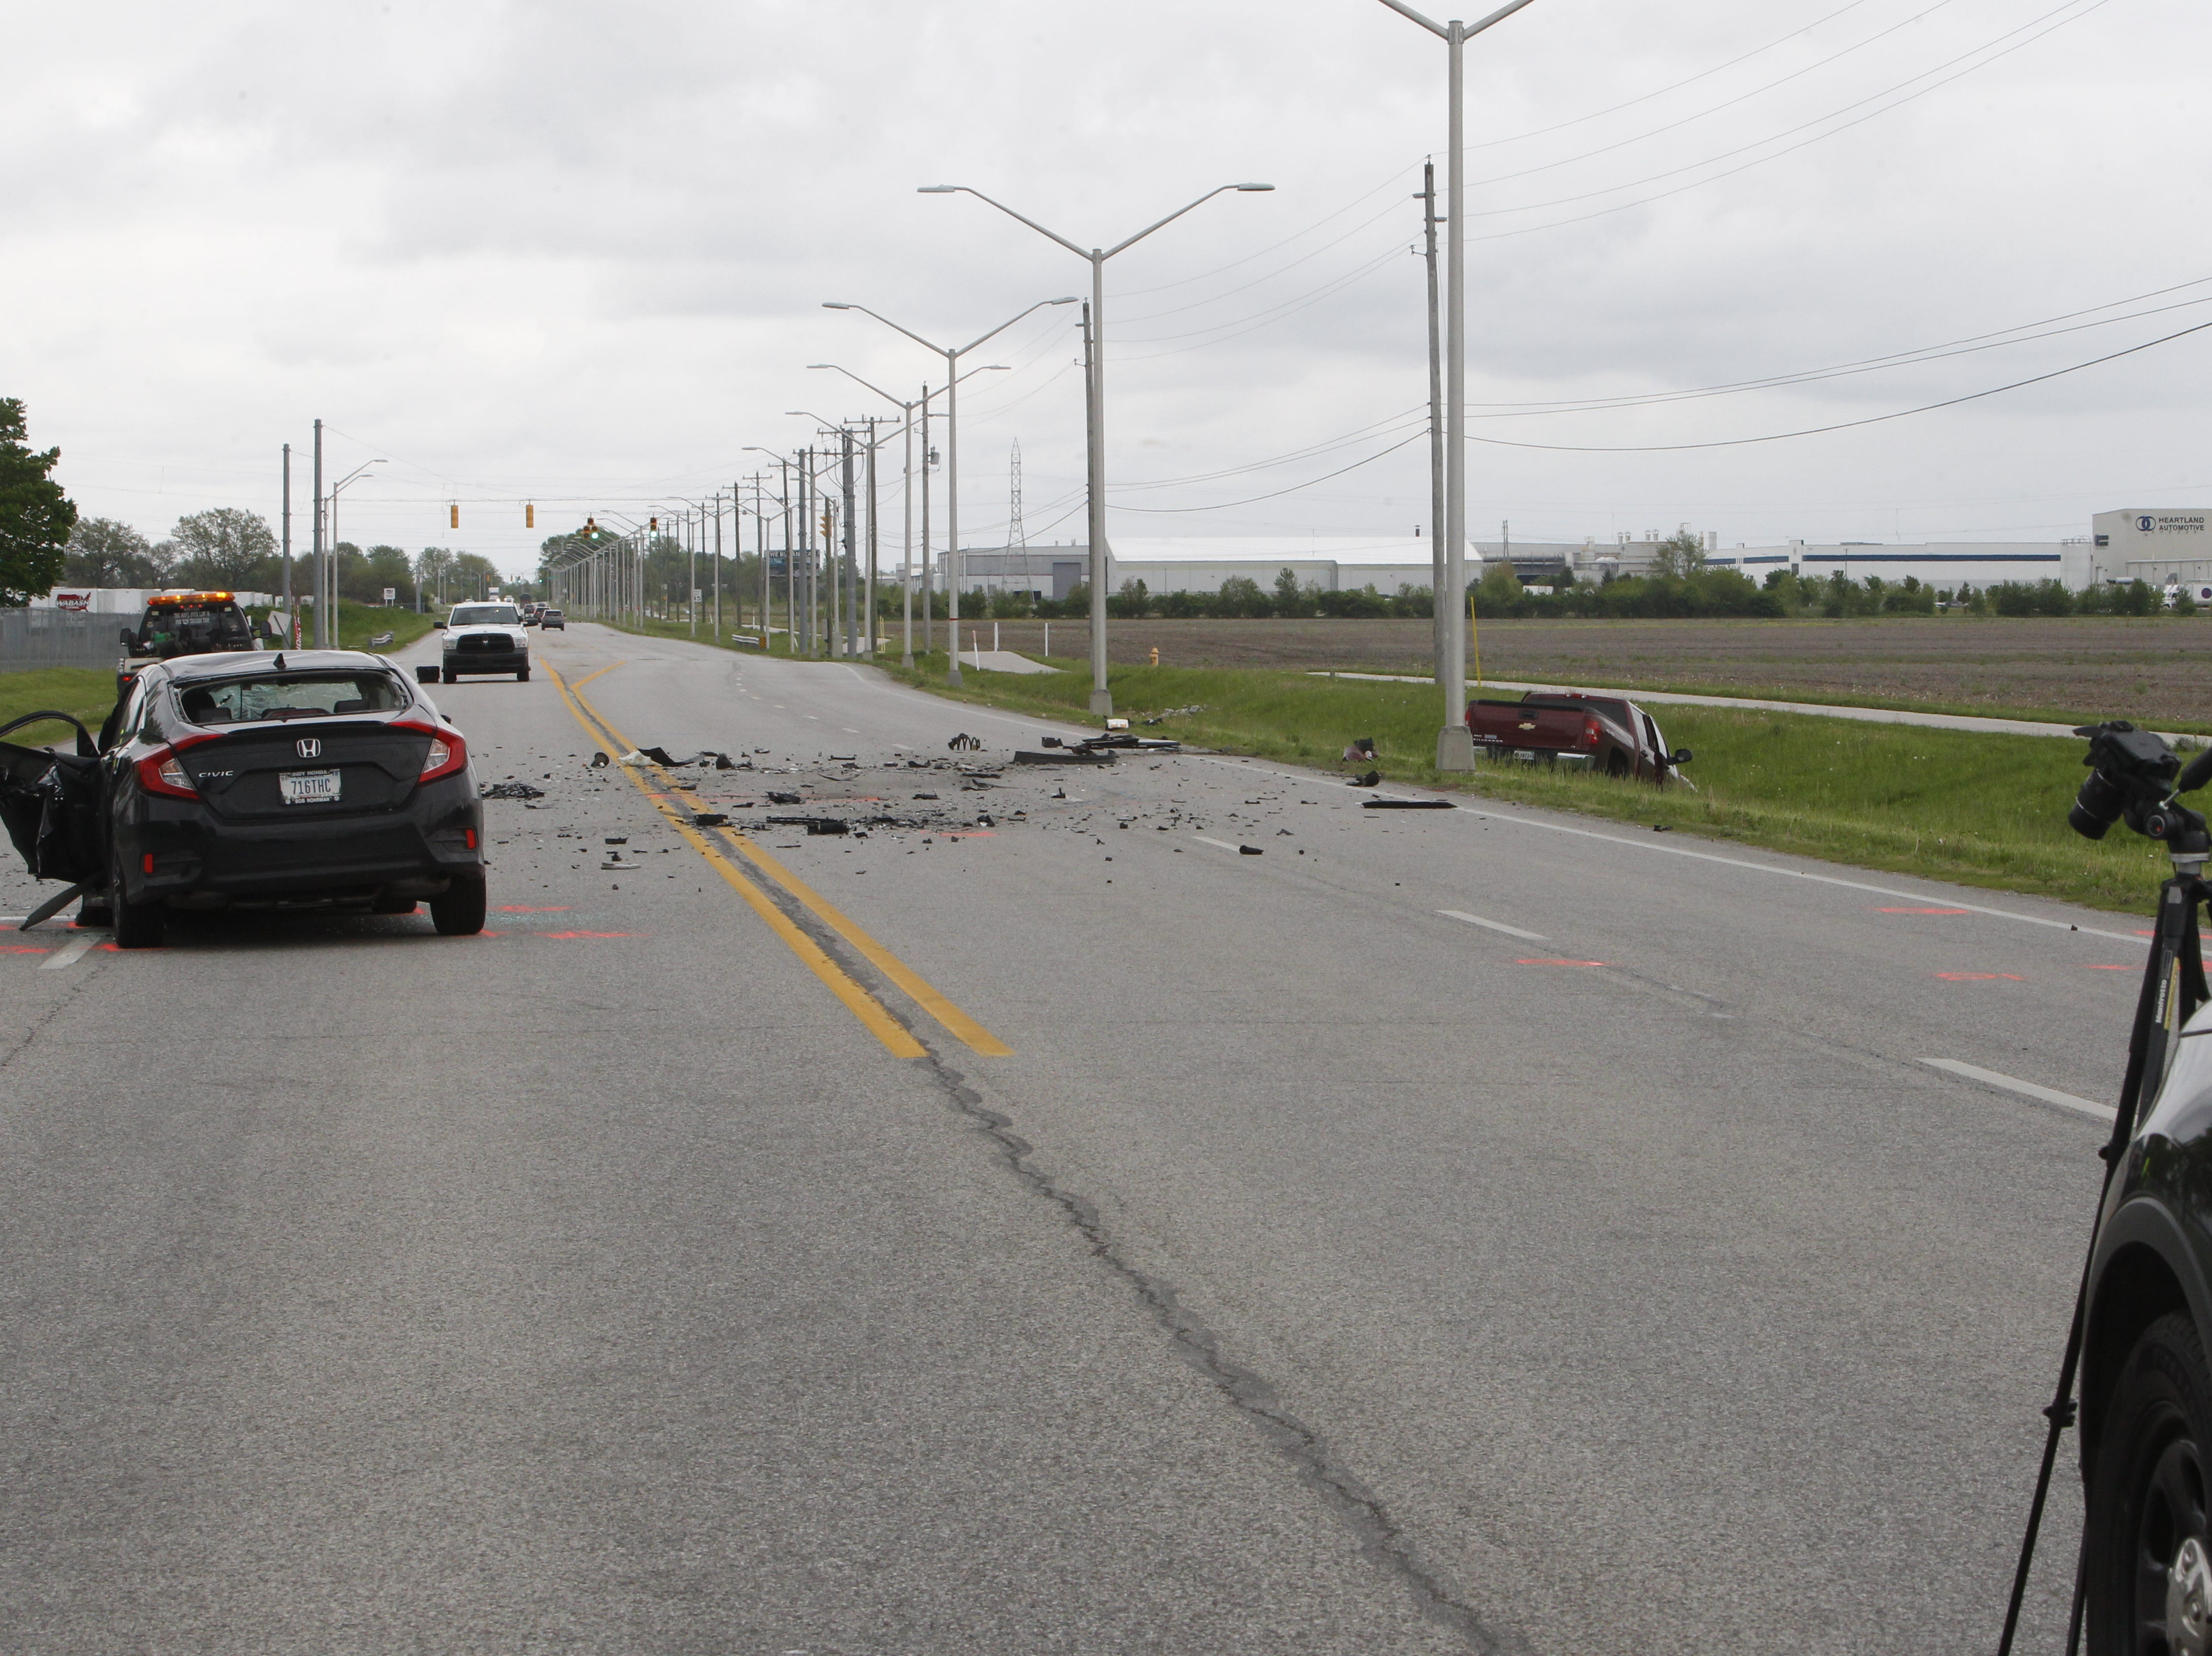 Two drivers were injured in a Friday morning crash on Veterans Memorial Parkway between Concord Road and U.S. 52.